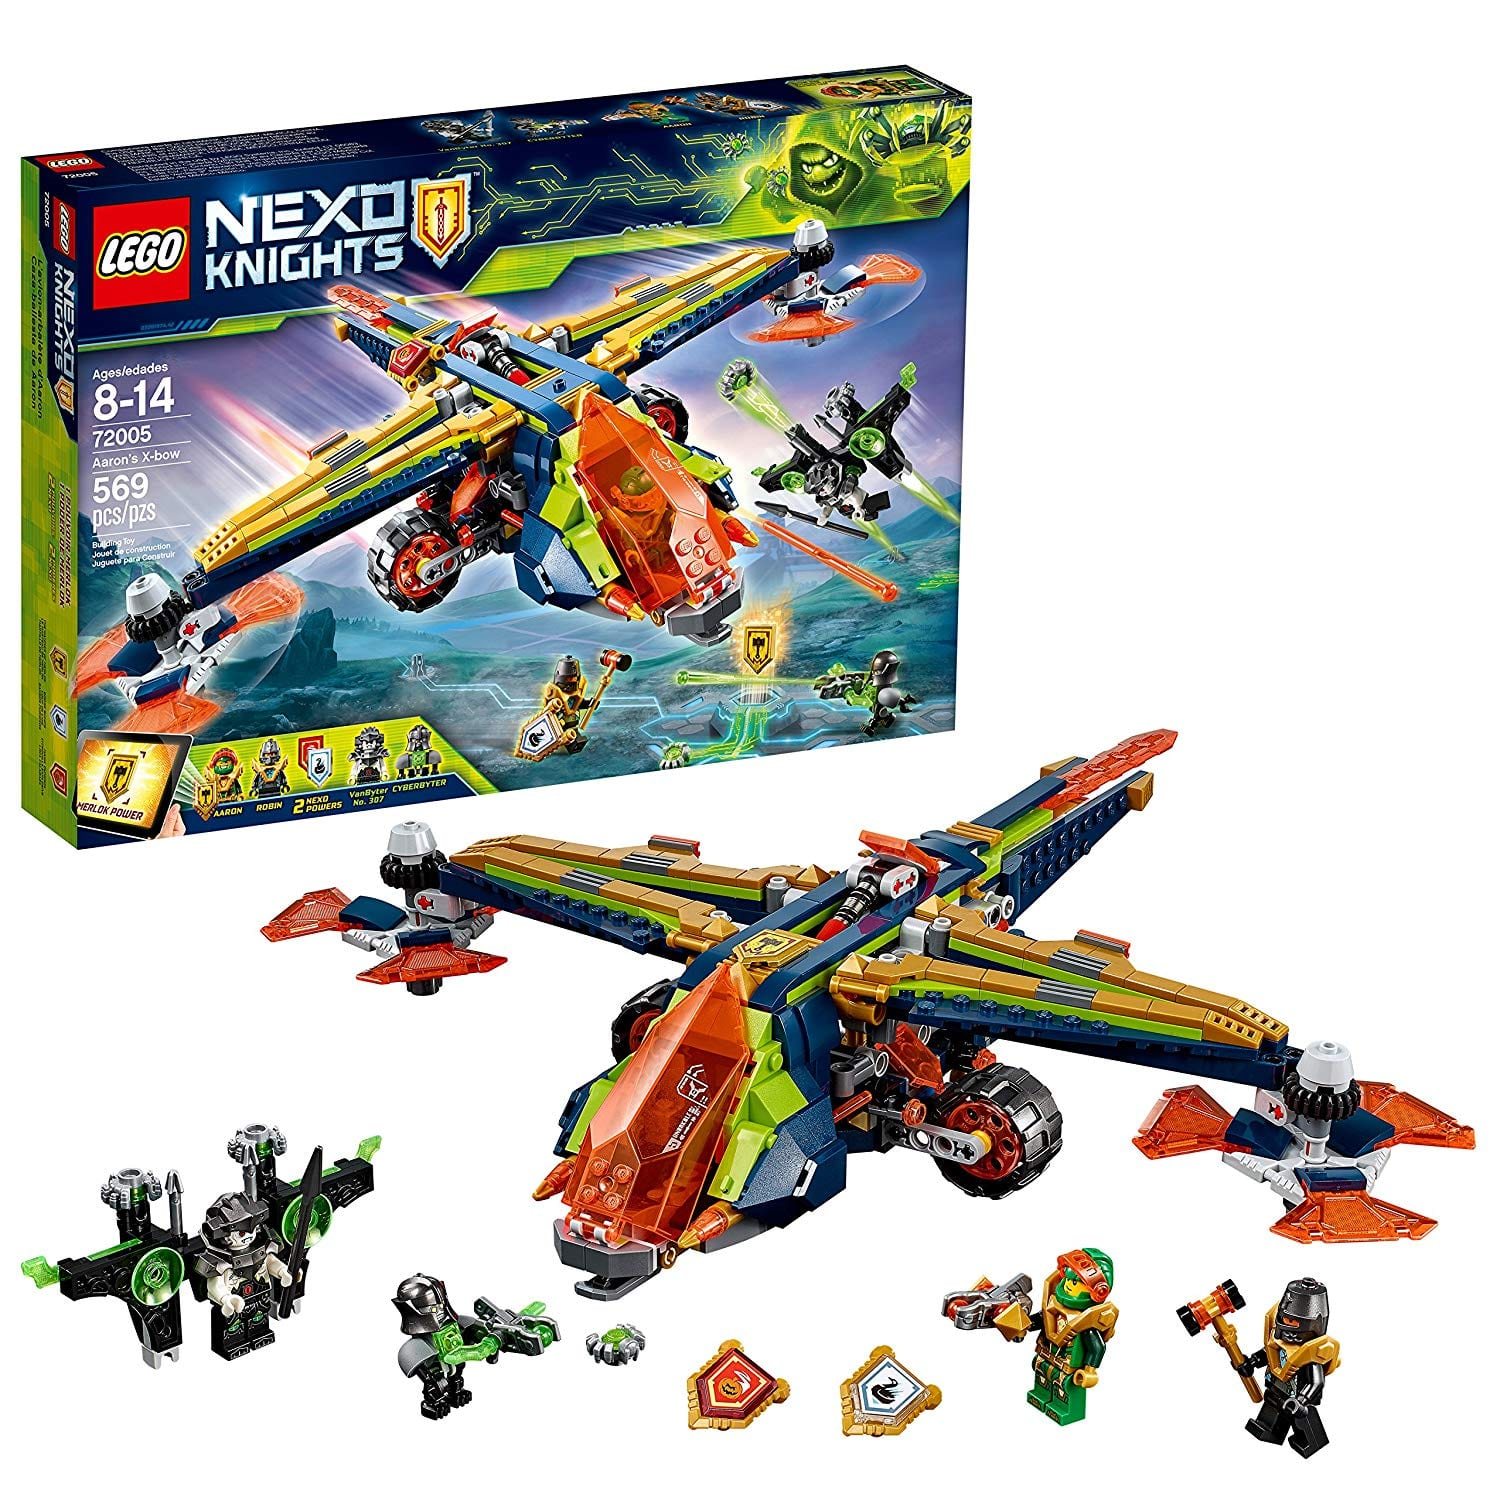 569-PC LEGO Nexo Knights Aaron's X-bow (72005) $30 + free shipping for Kohls cardholders